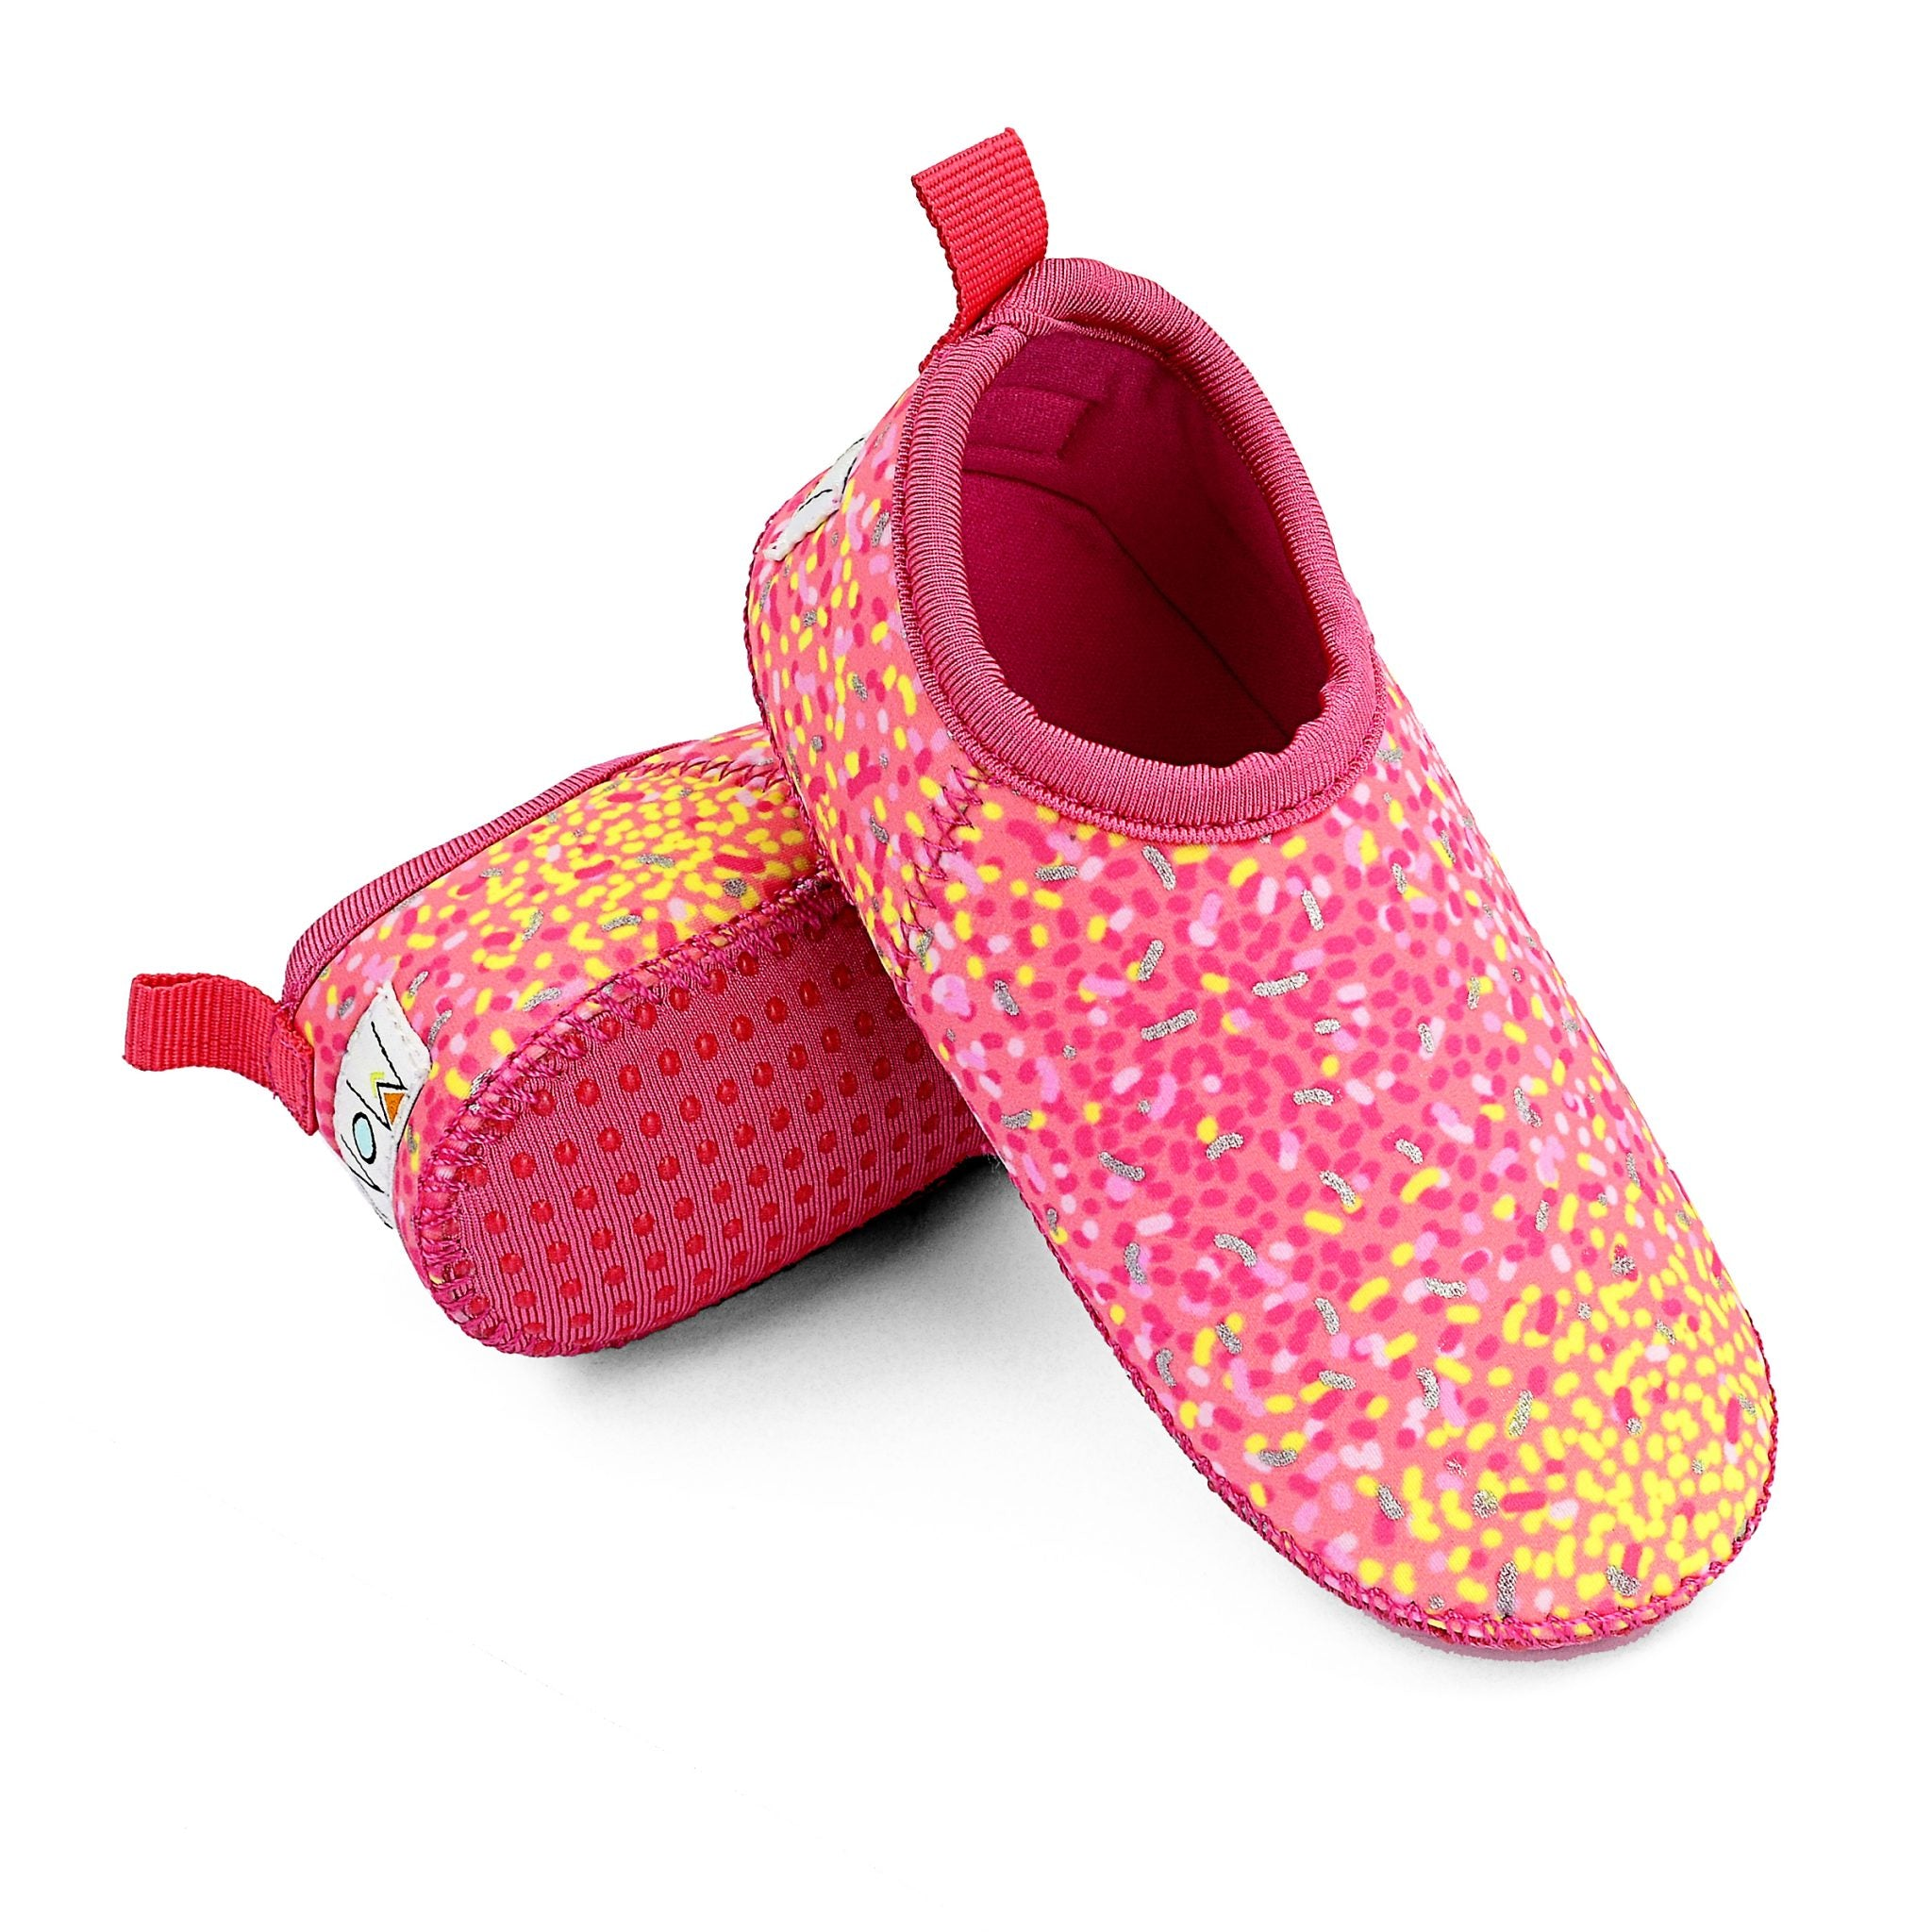 Starburst Toddler Soft Sole Beach Shoe - Chachi's Bay - kids rashies - kids swimwear - kids swim shoes - round towels - beach towels